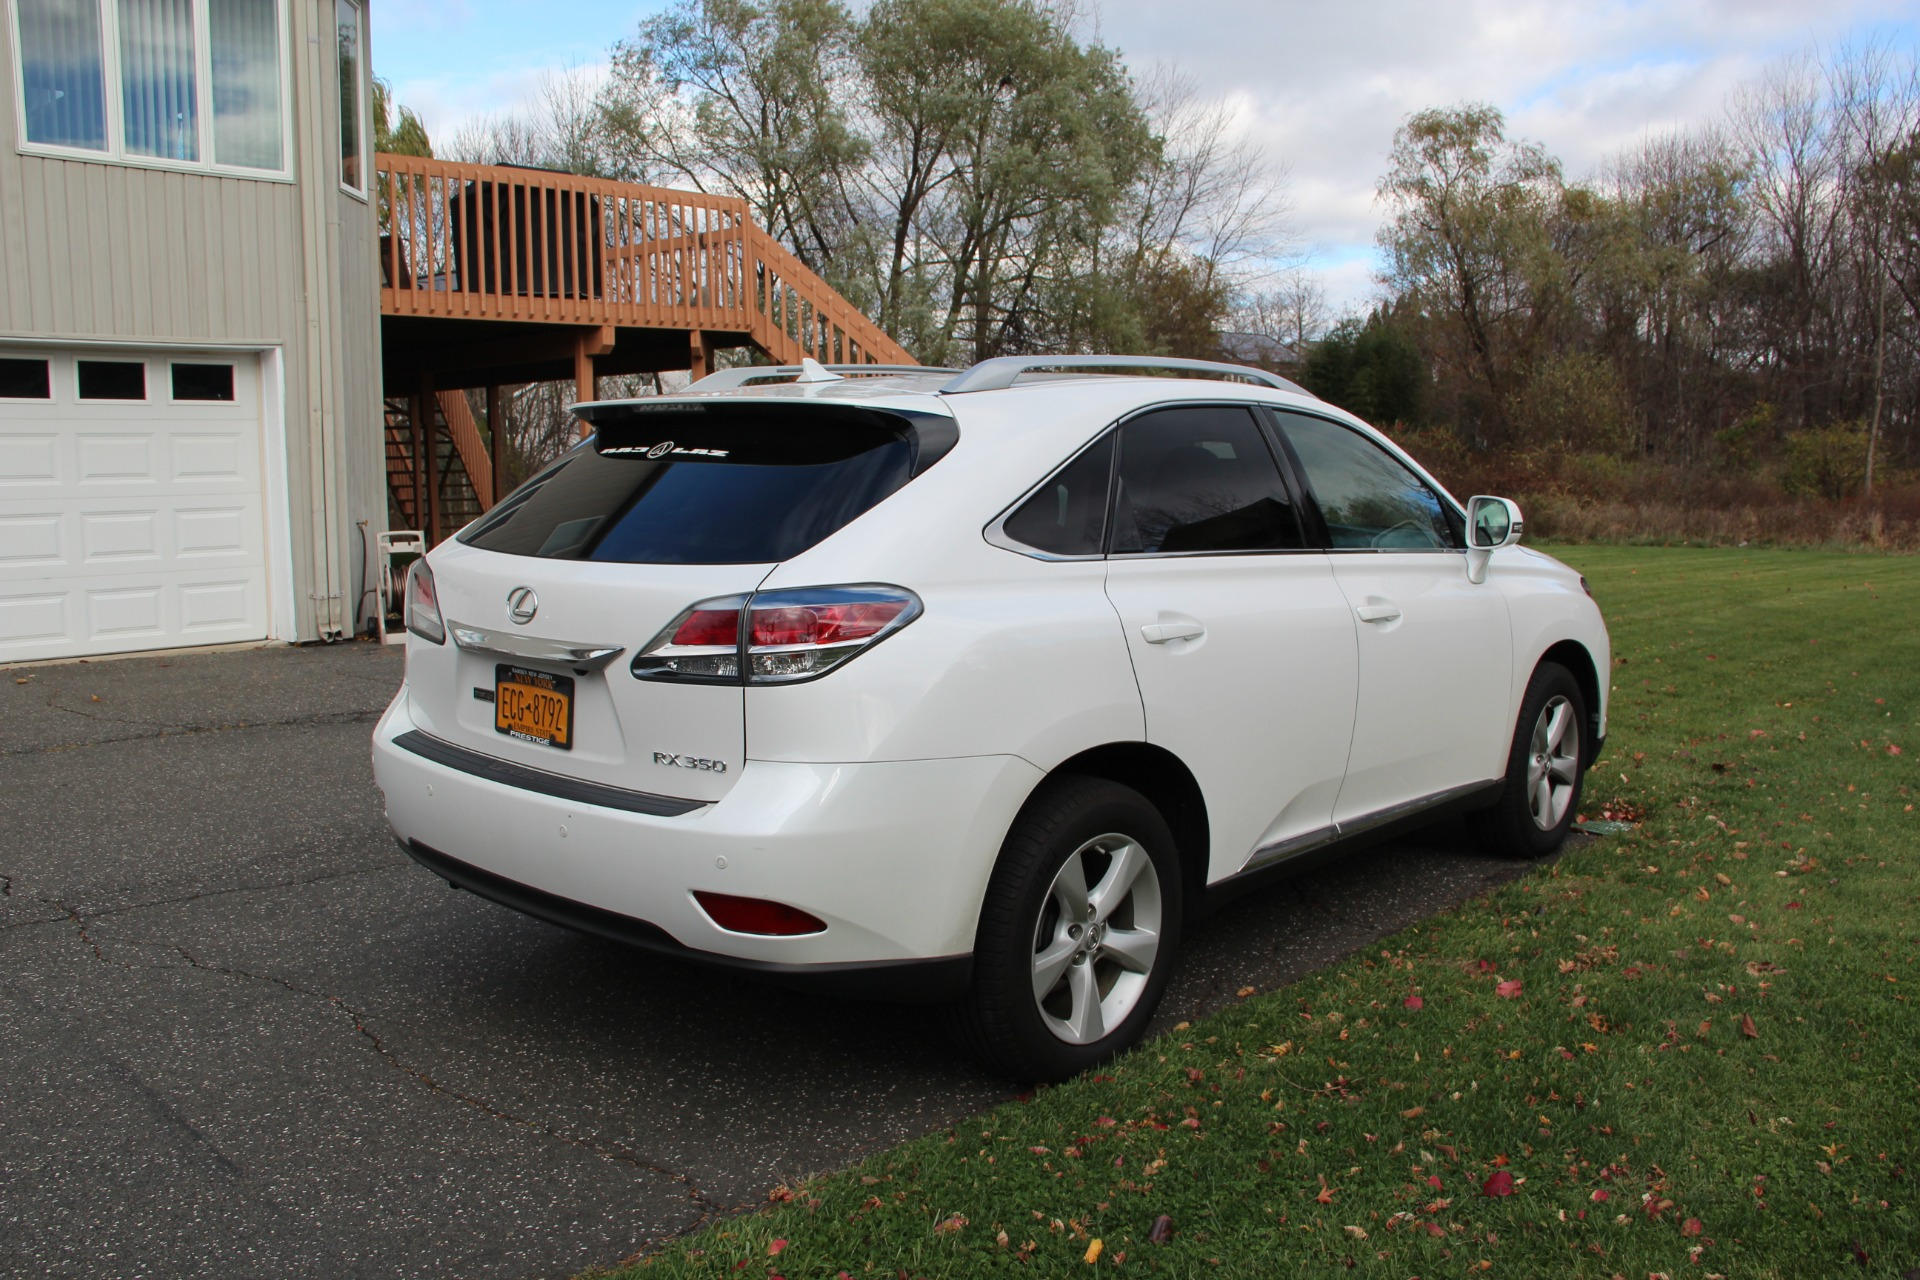 2013 lexus rx350 stock 2013lexus for sale near new york ny ny lexus dealer. Black Bedroom Furniture Sets. Home Design Ideas